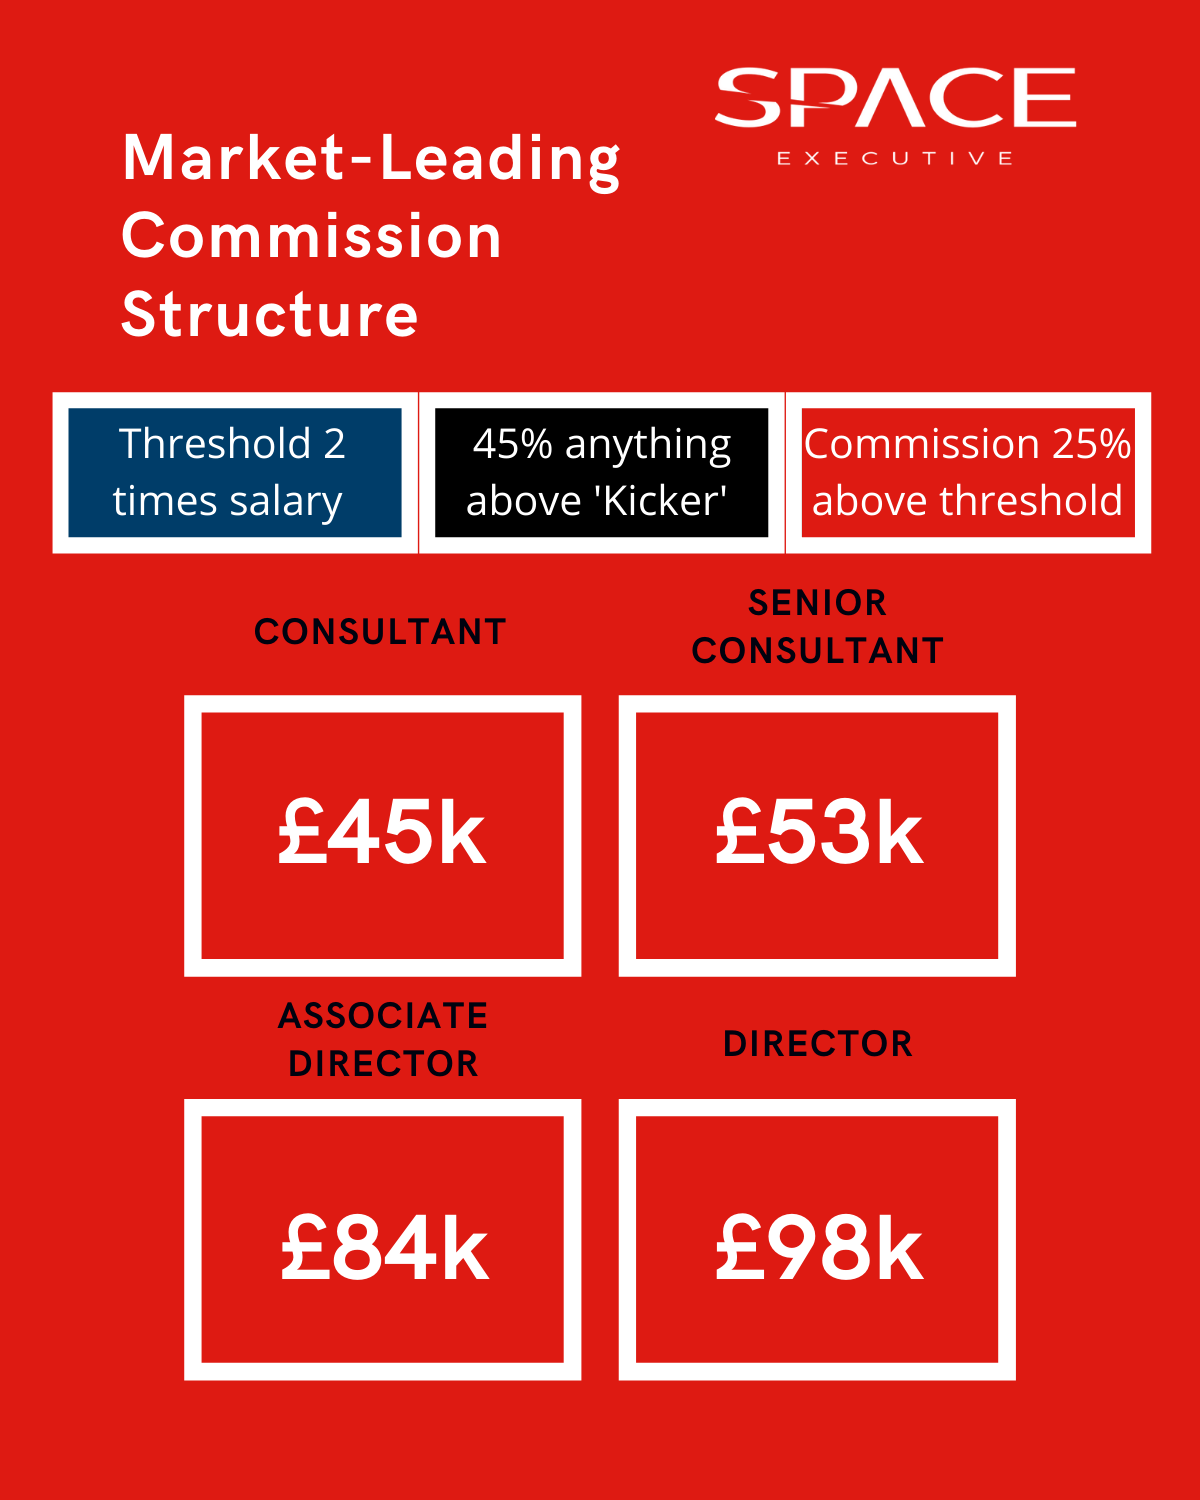 Space Executive Market Leading Commission Structure